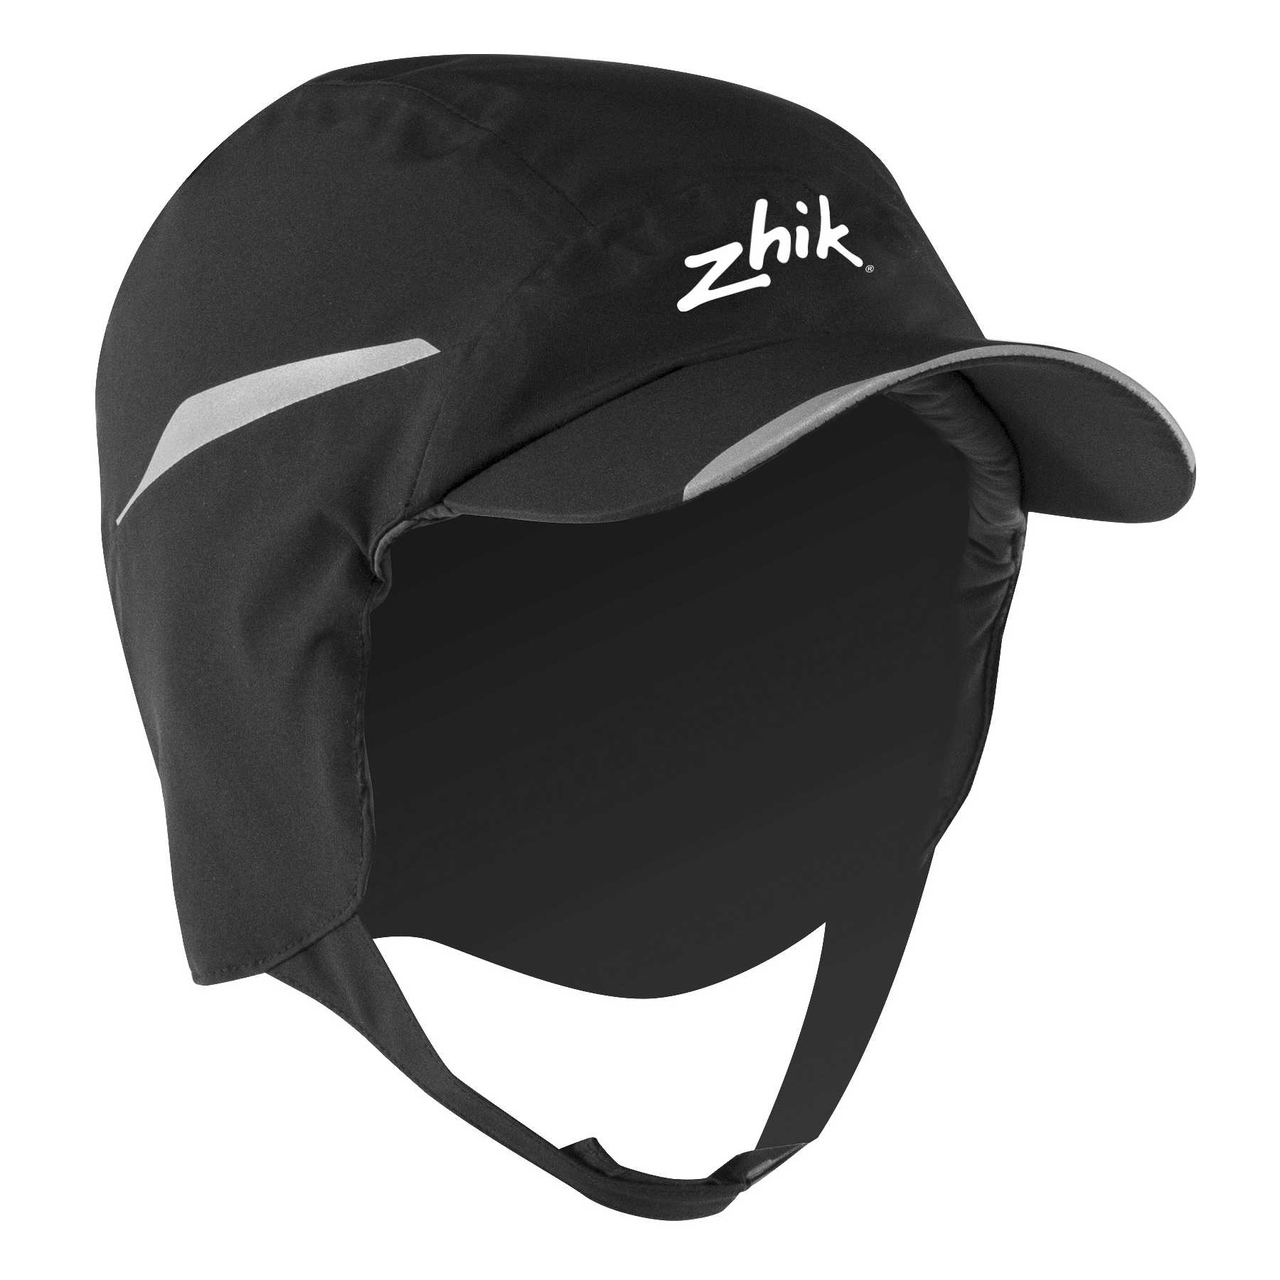 zhik-winter-hat-0501-u-blk-west-coast-sailing.jpg